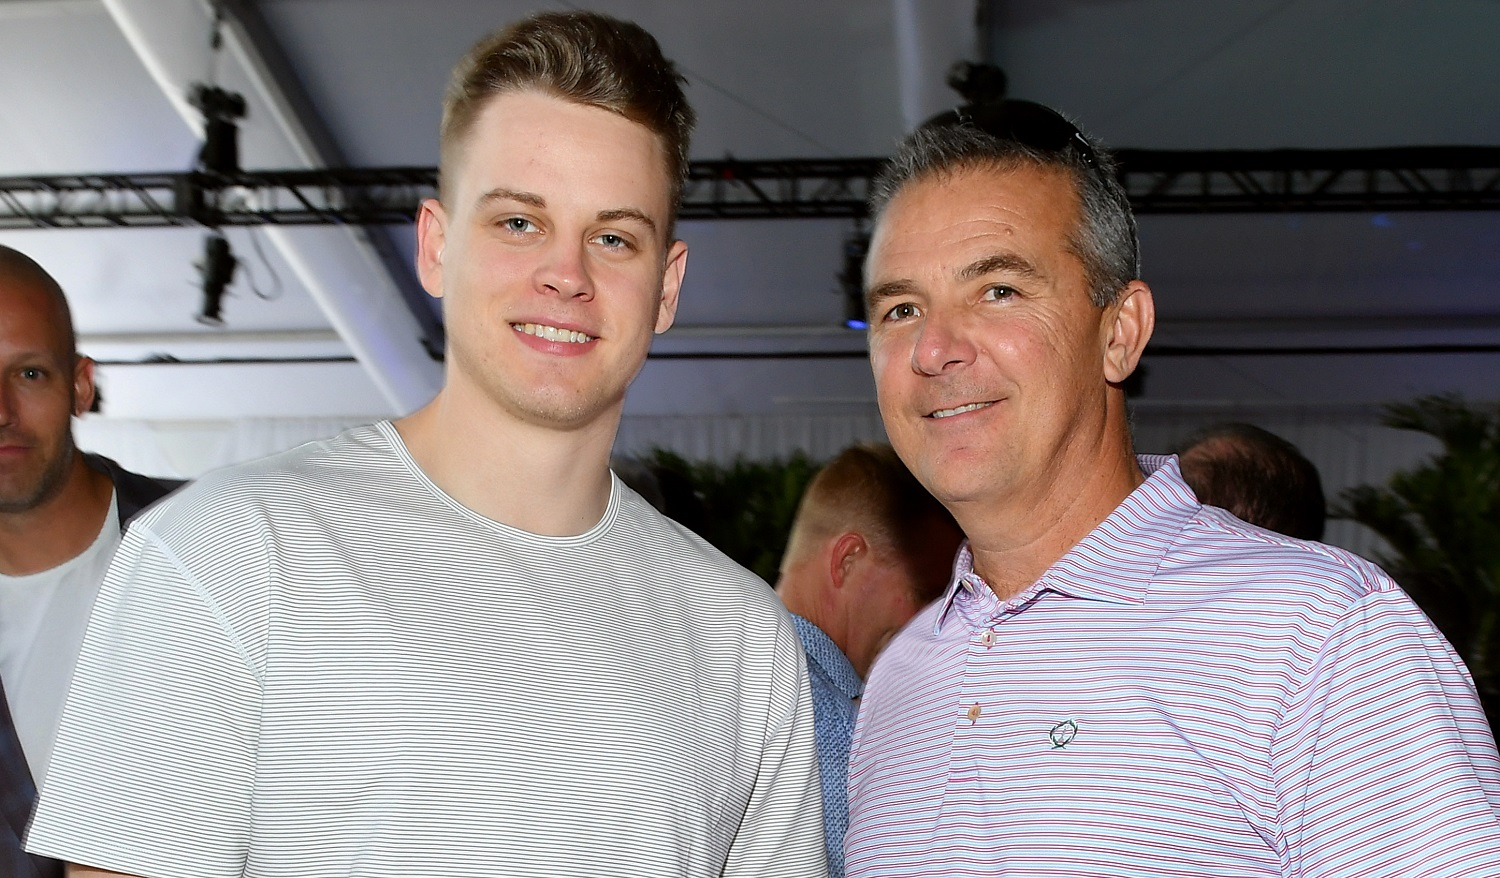 Joe Burrow, left, spent three seasons in Urban Meyer's Ohio State program before transferring to LSU. | Mike Coppola/Getty Images for Fanatics)